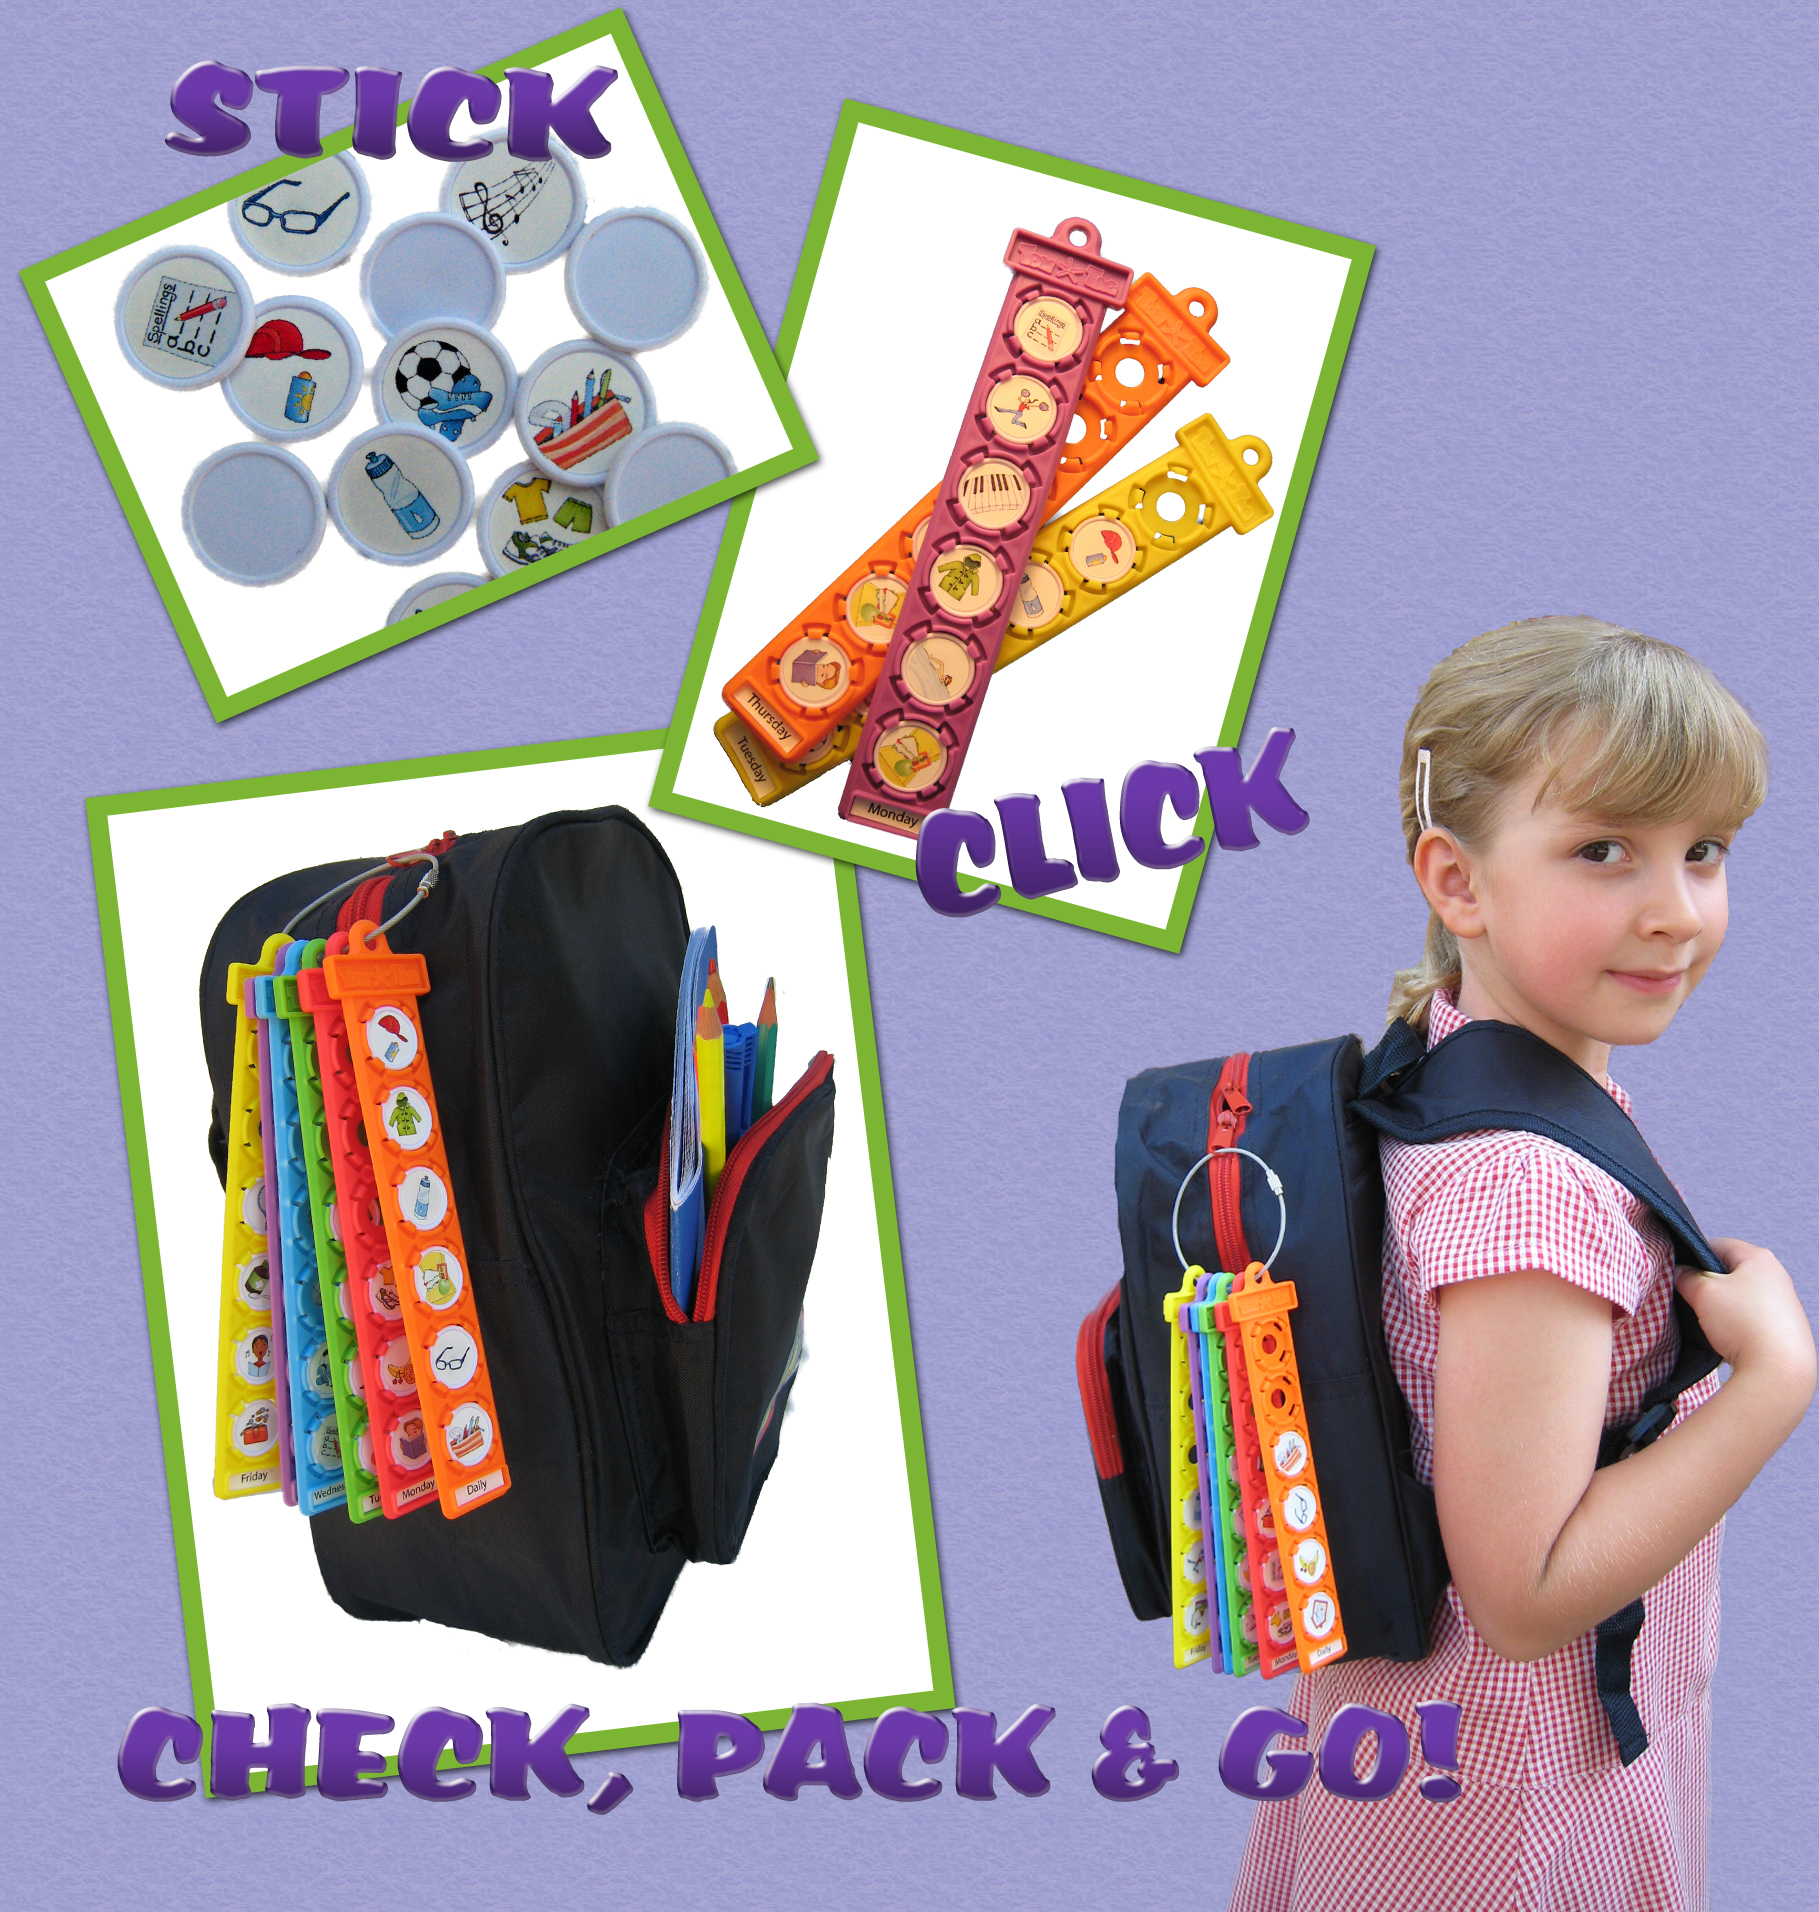 new tool that helps kids pack their bag for school